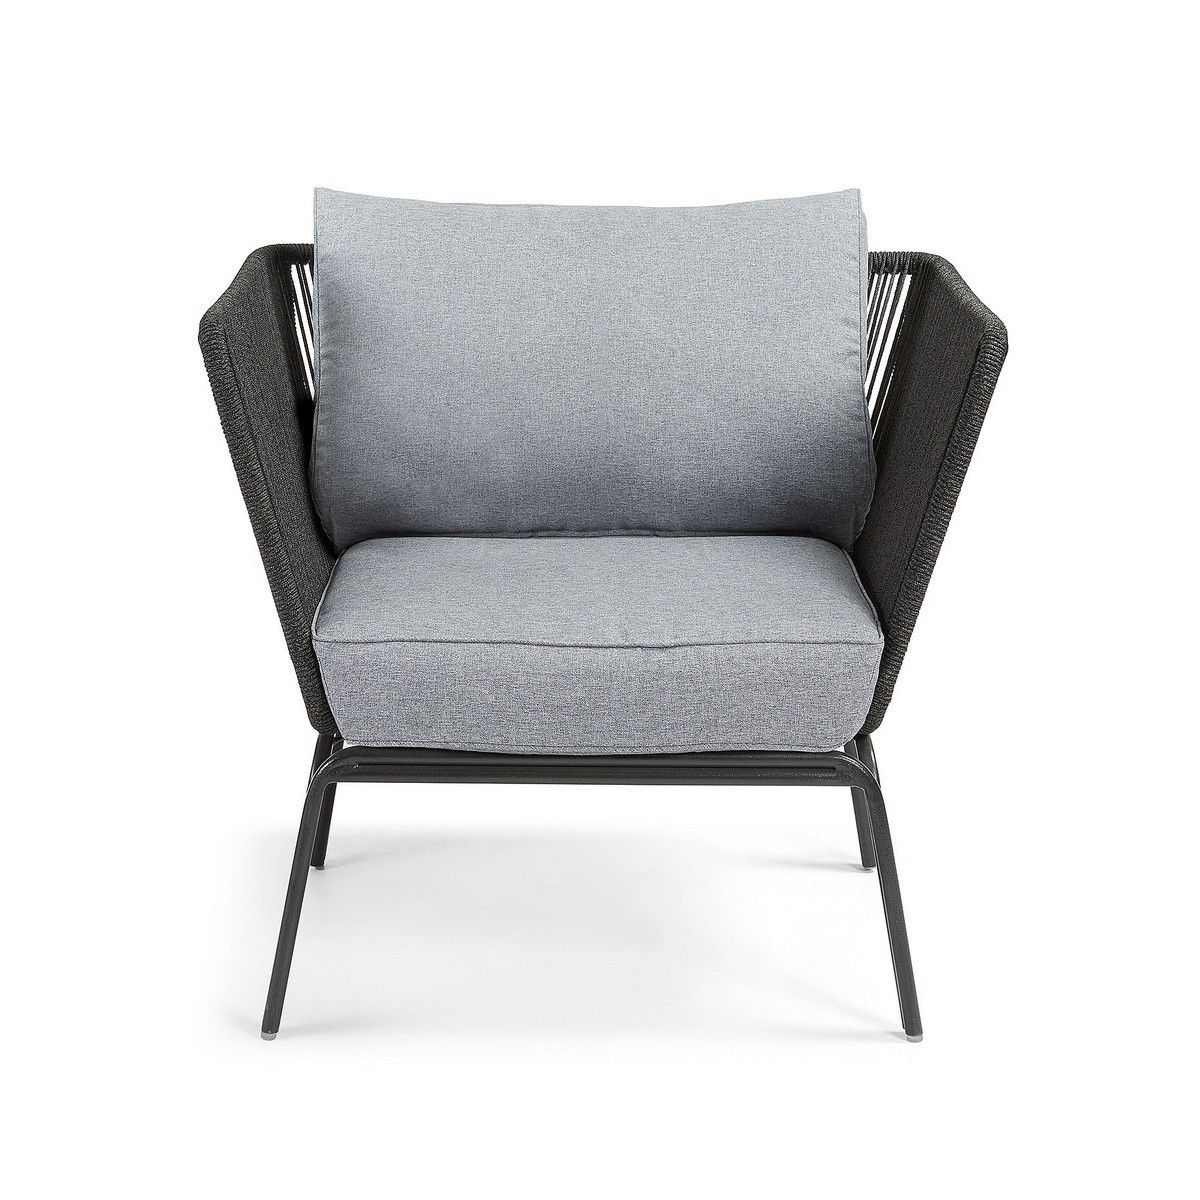 Liosia Rope & Steel Lounge Armchair